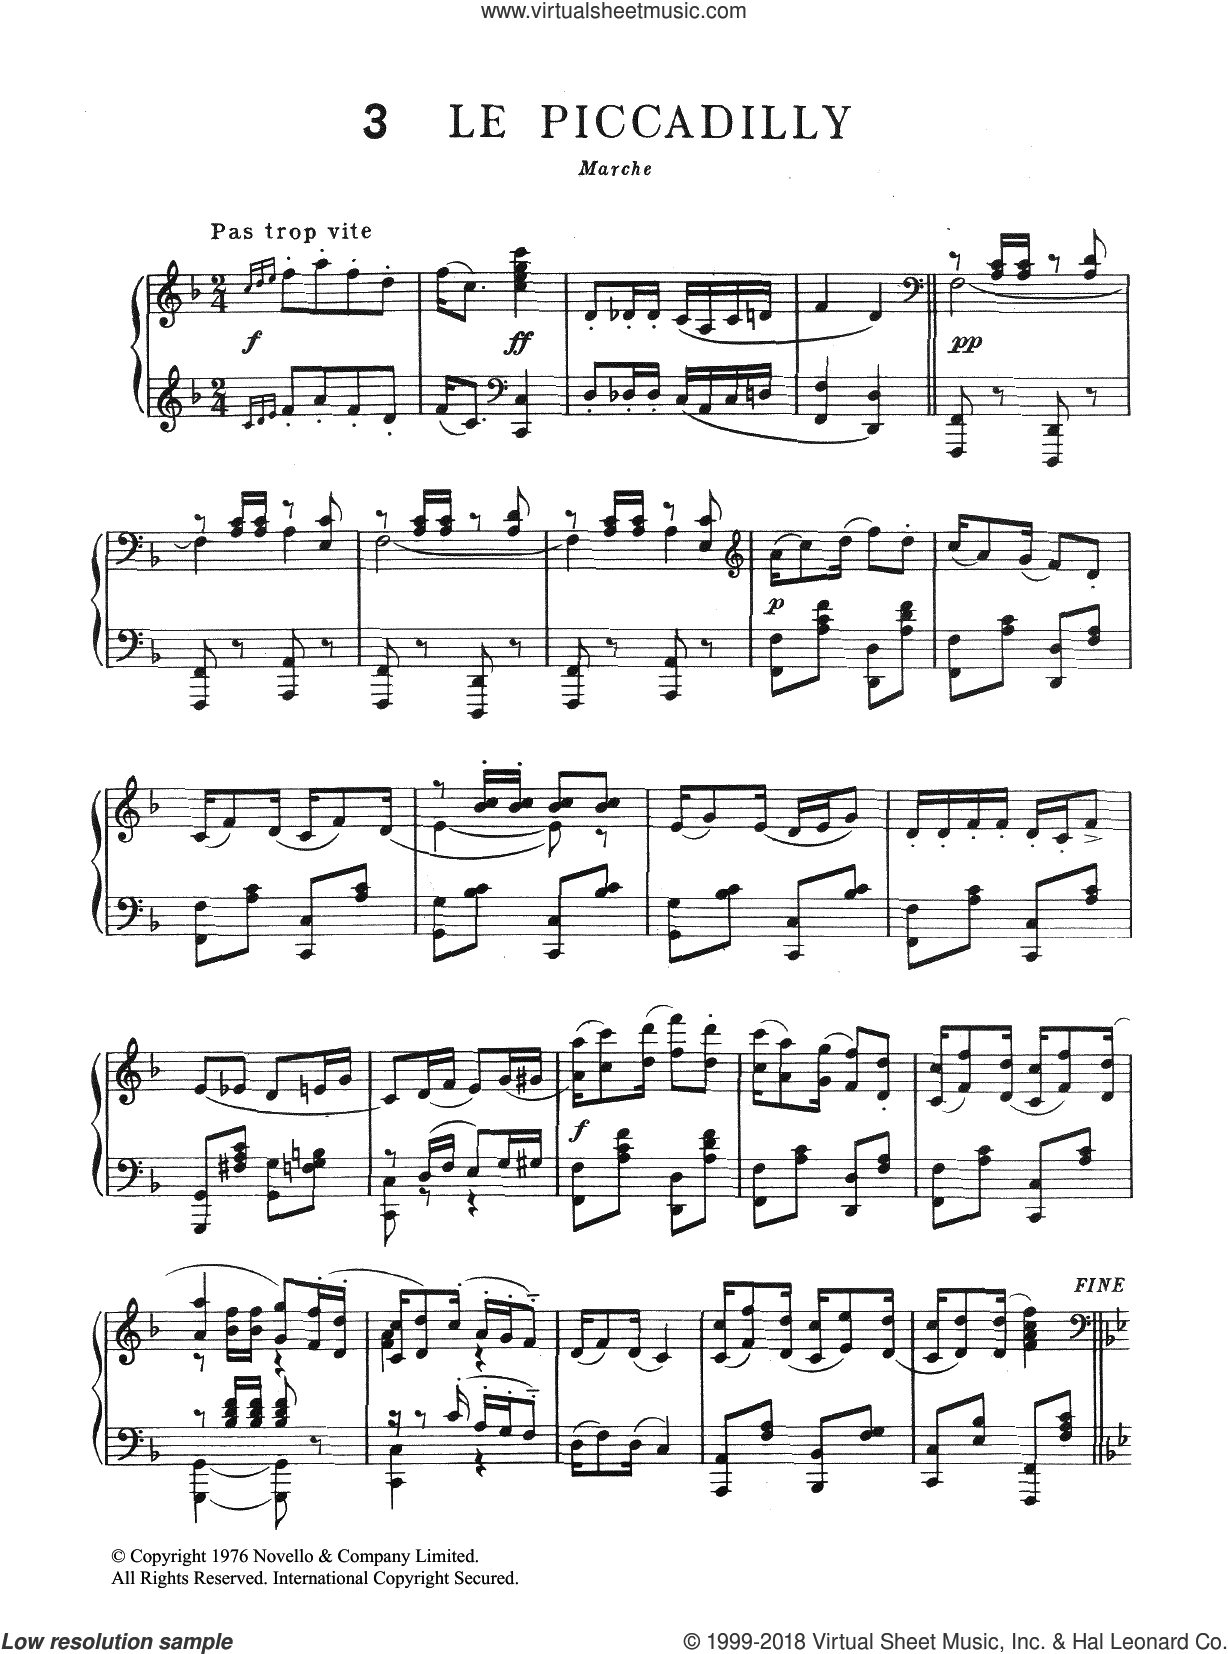 Le Piccadilly sheet music for piano solo by Erik Satie, classical score, intermediate skill level